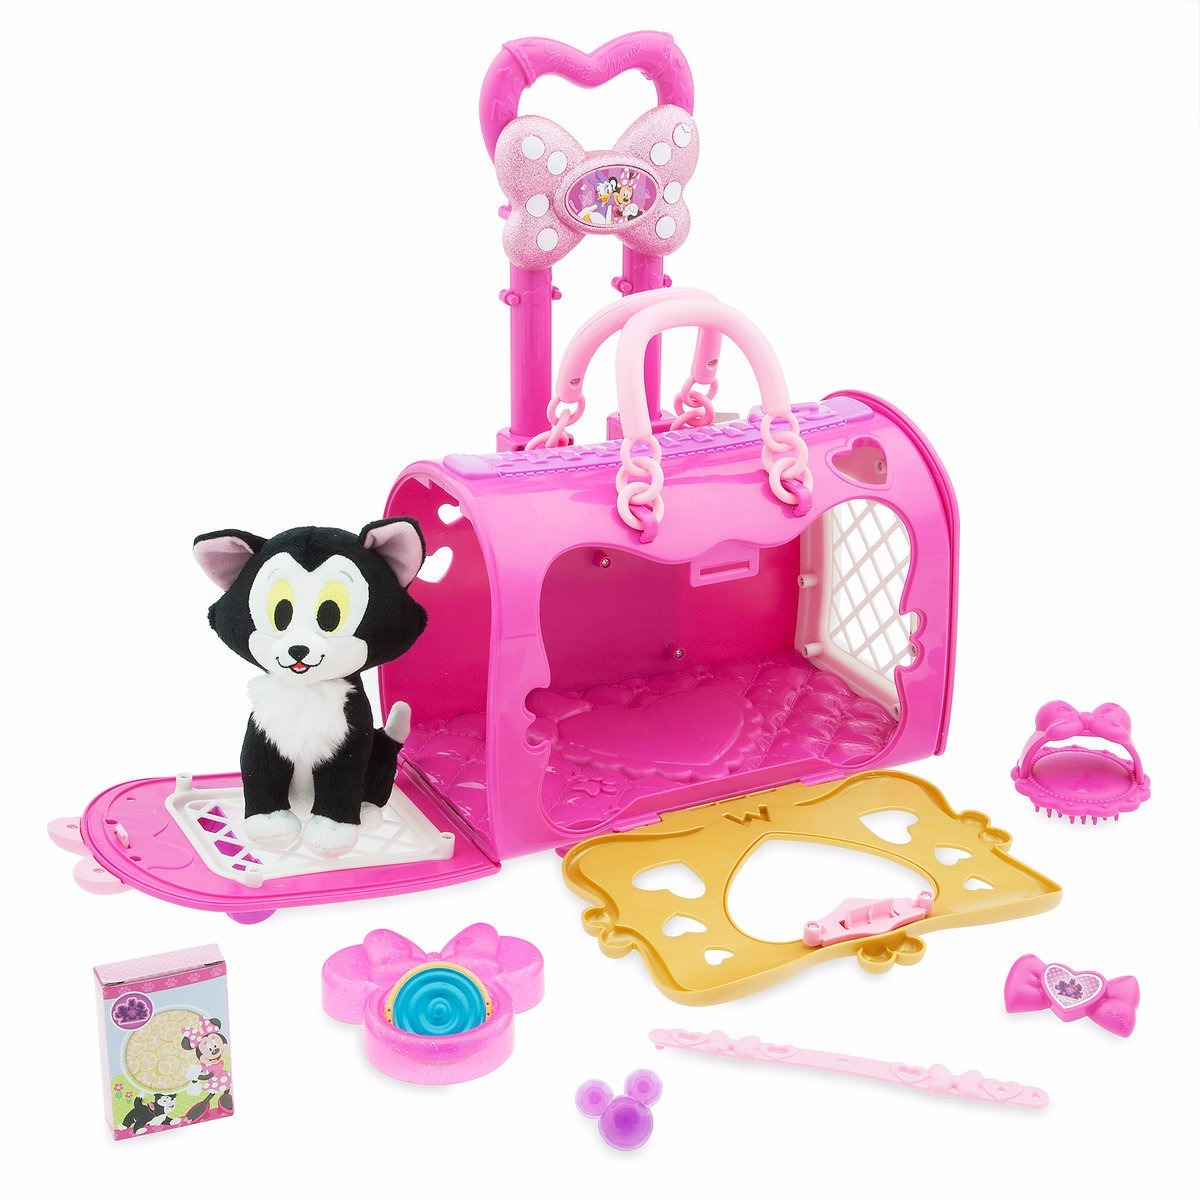 Minnie Mouse Juguete Y Peluche Figaro Transportin Minnie